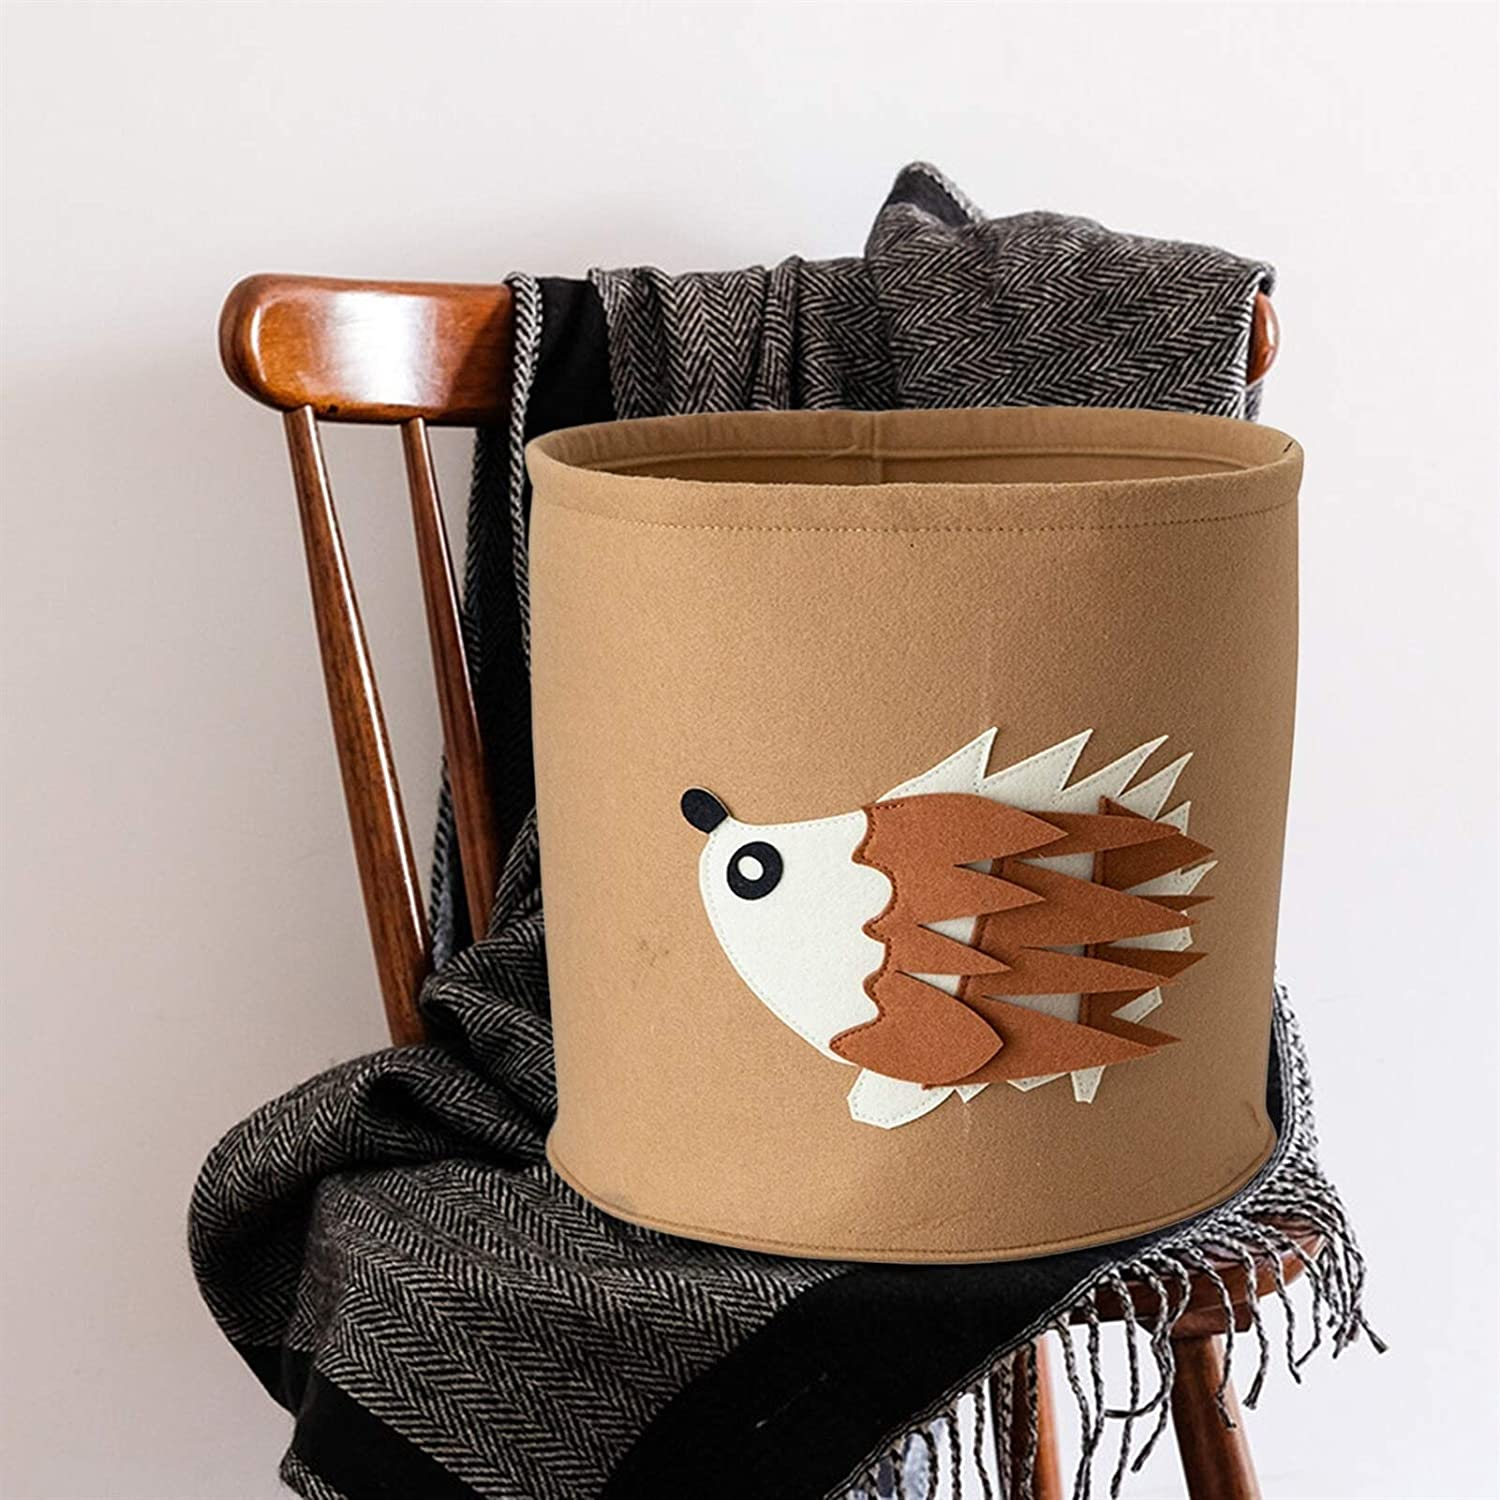 Manufacturer direct delivery JZYZSNLB Storage Basket Household Clothing Folded Popularity